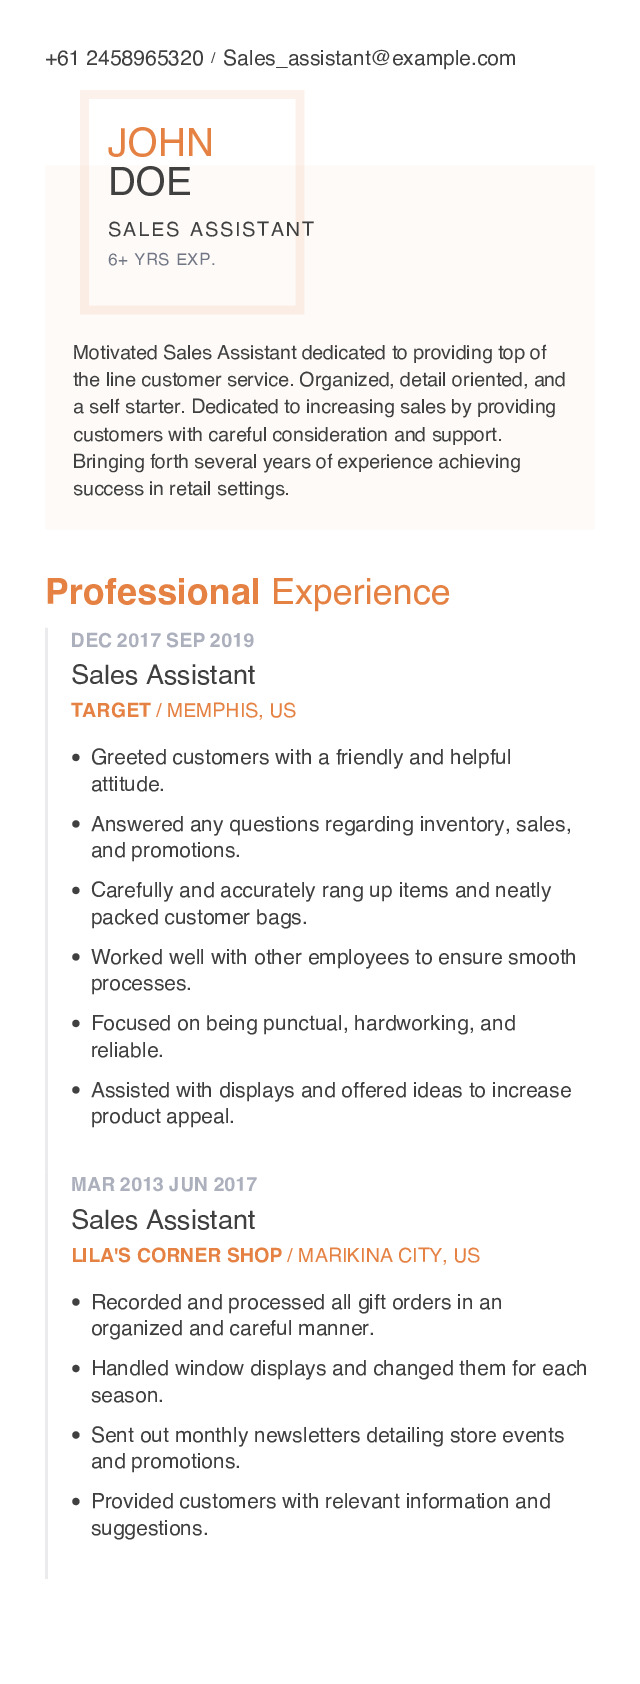 Sales Assistant Mobile Resume Example